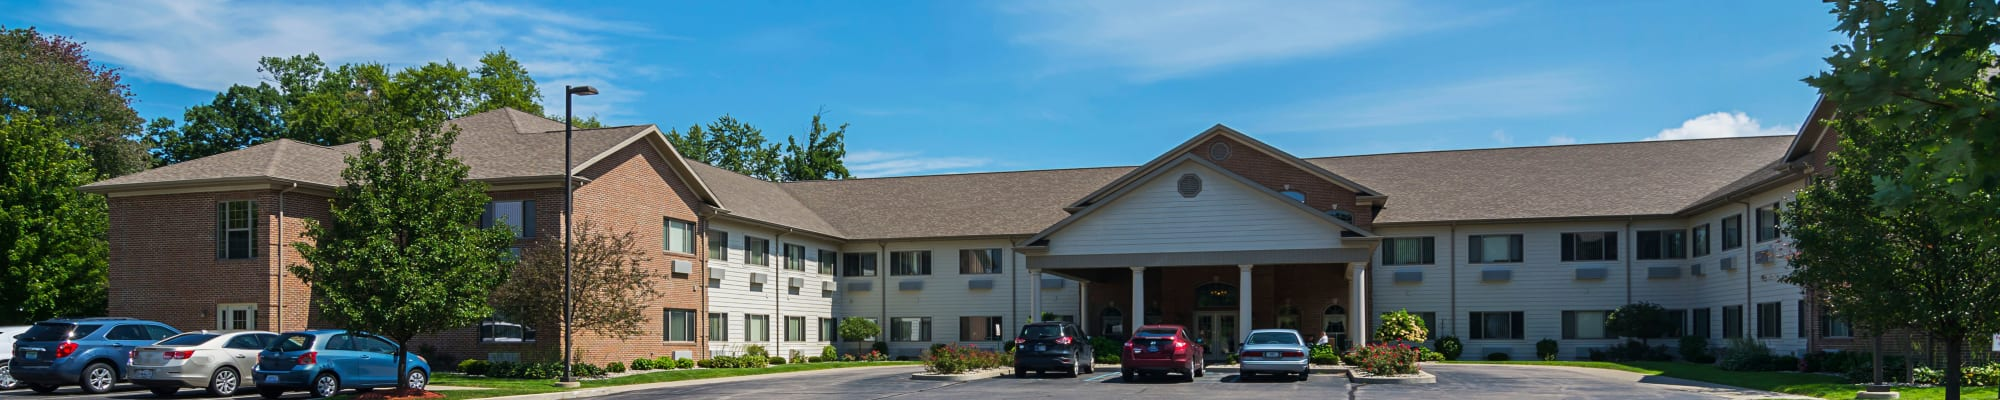 Best Senior Living in Michigan City offers Independent Living Assisted Living and Memory Care